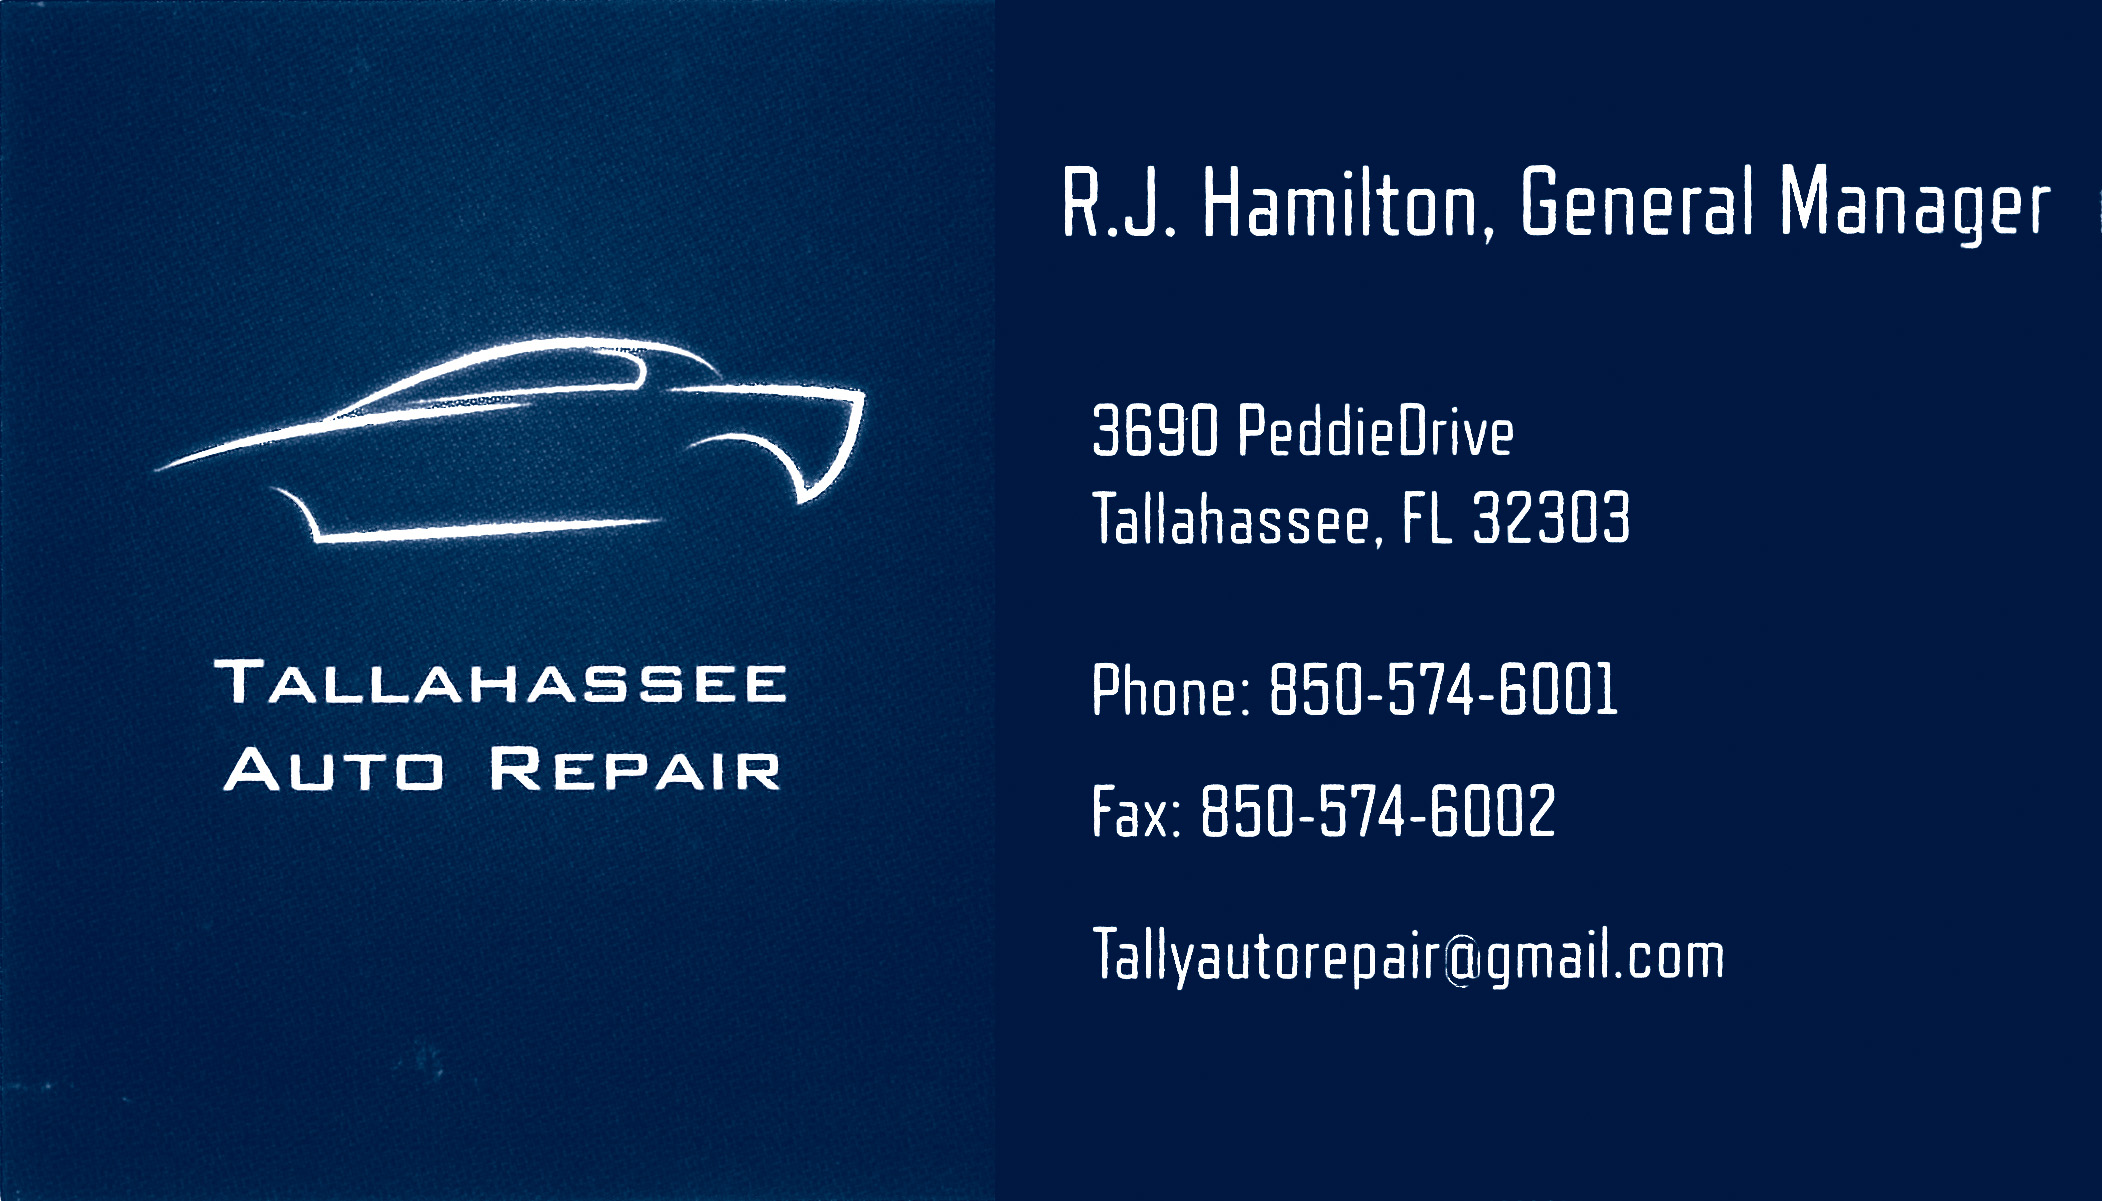 Tallahassee Auto Repair quarter page (2).jpg